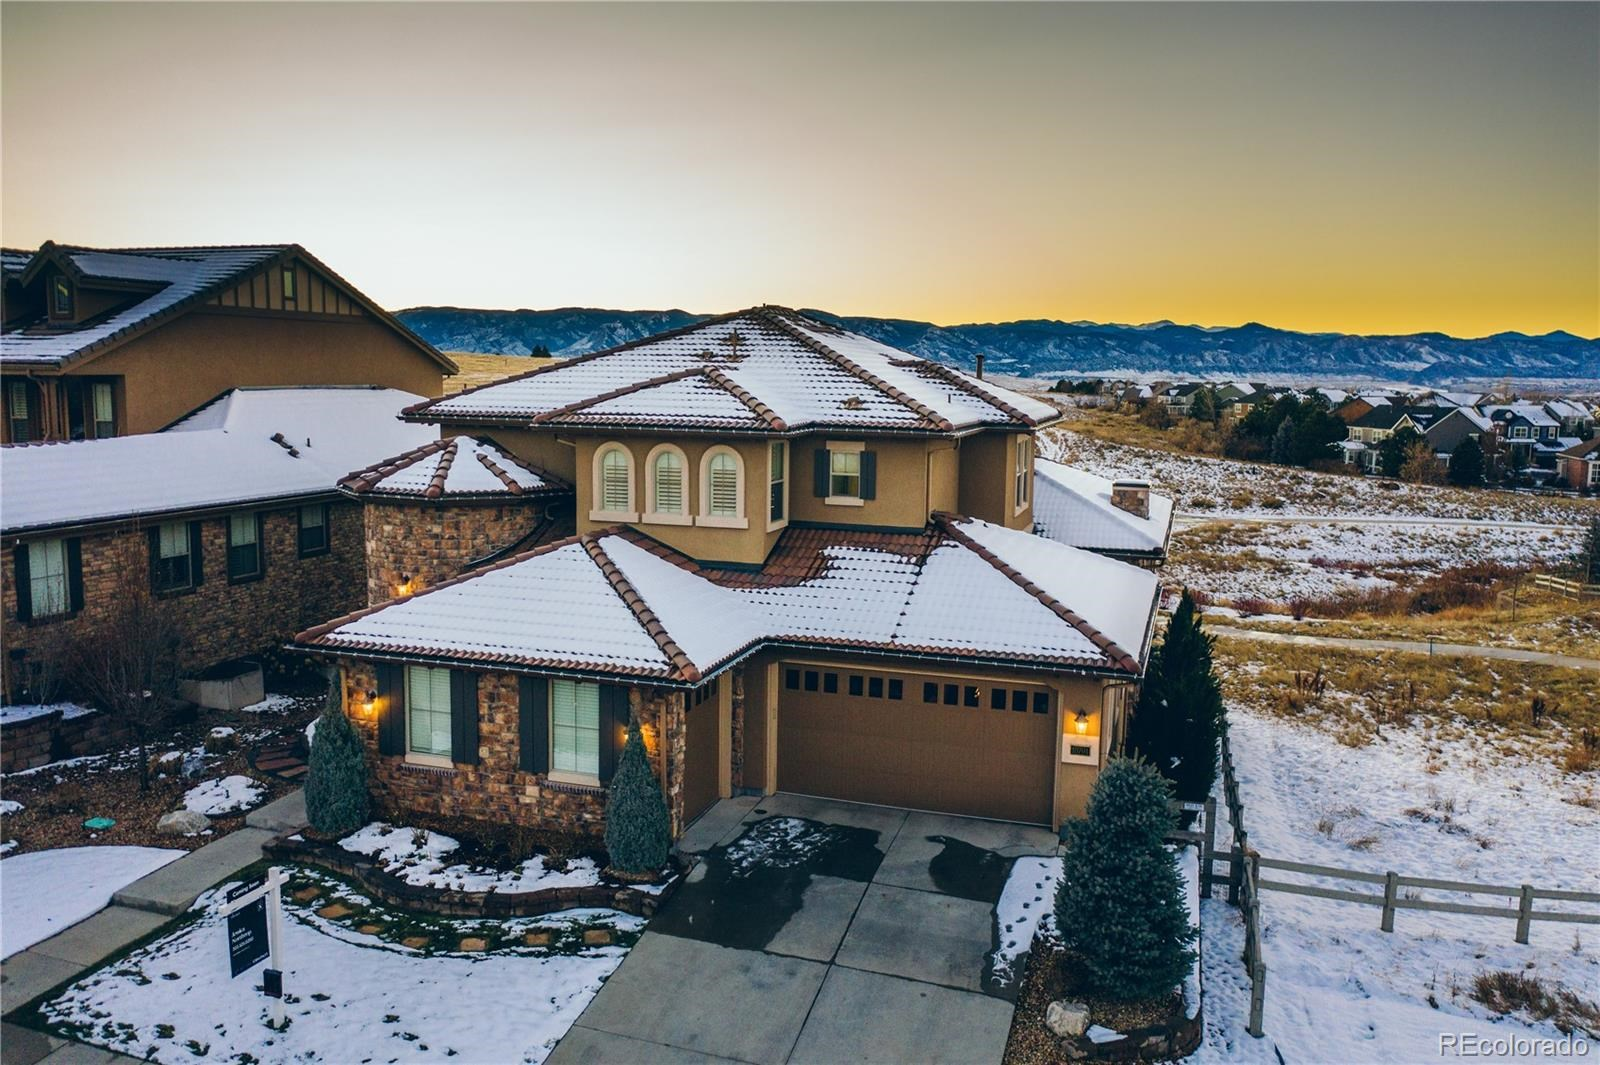 MLS# 2755672 - 1 - 10701 Manorstone Drive, Highlands Ranch, CO 80126